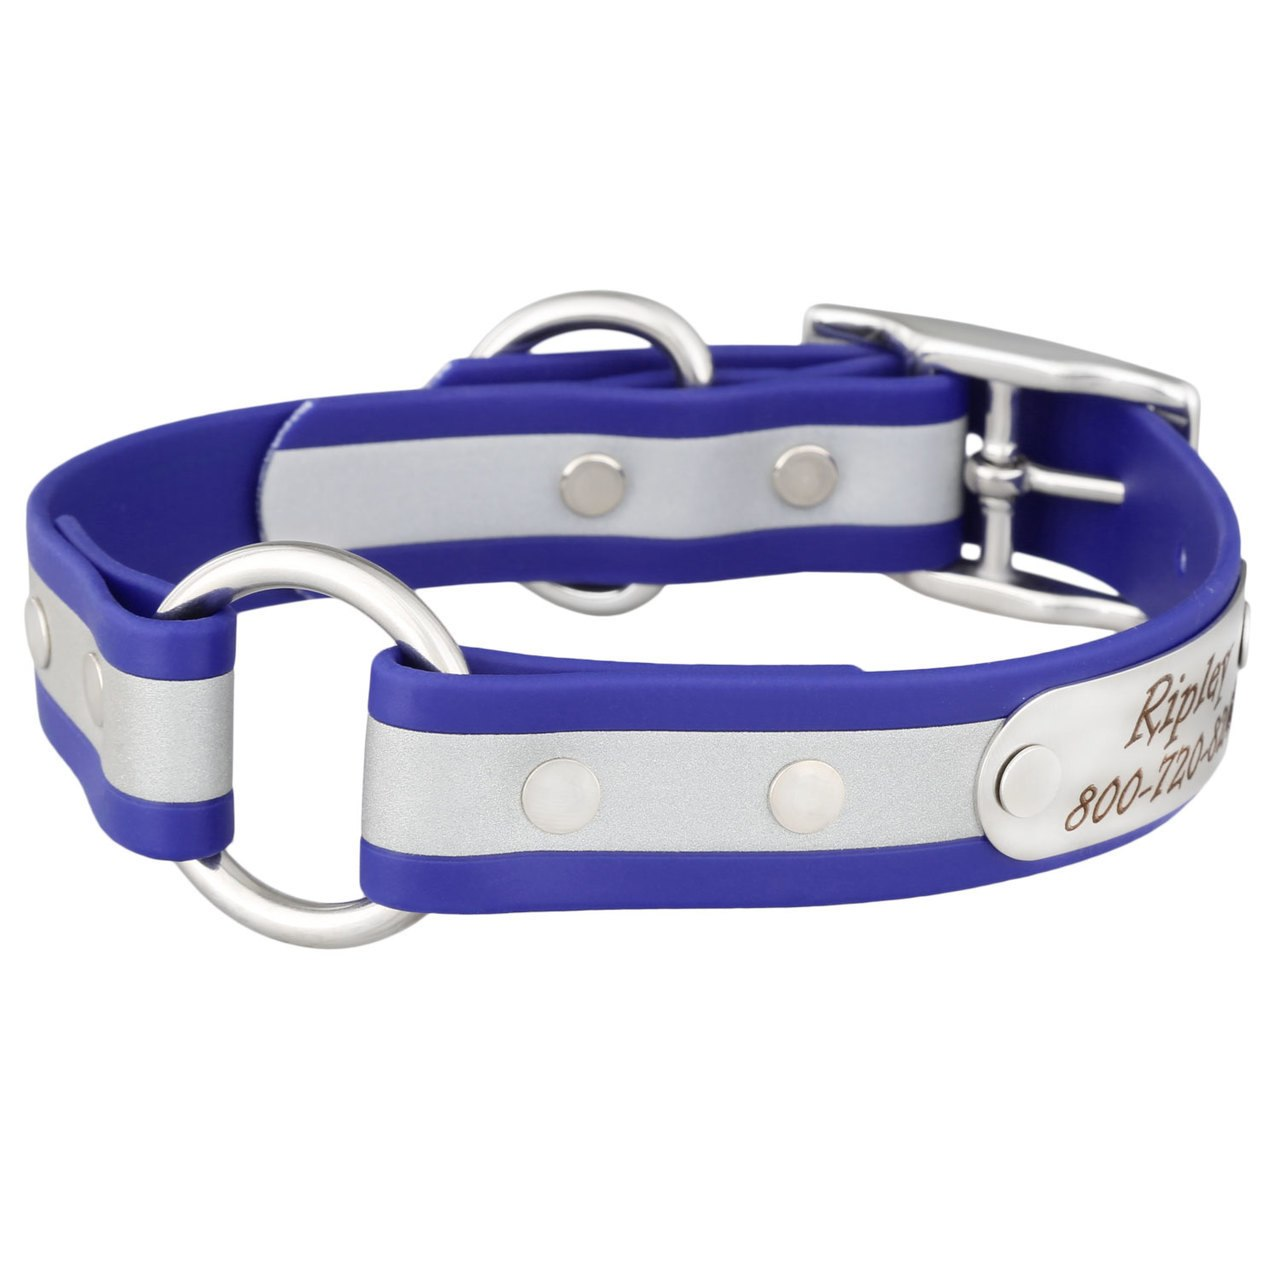 Personalized Waterproof Reflective Safety Dog Collar Blue